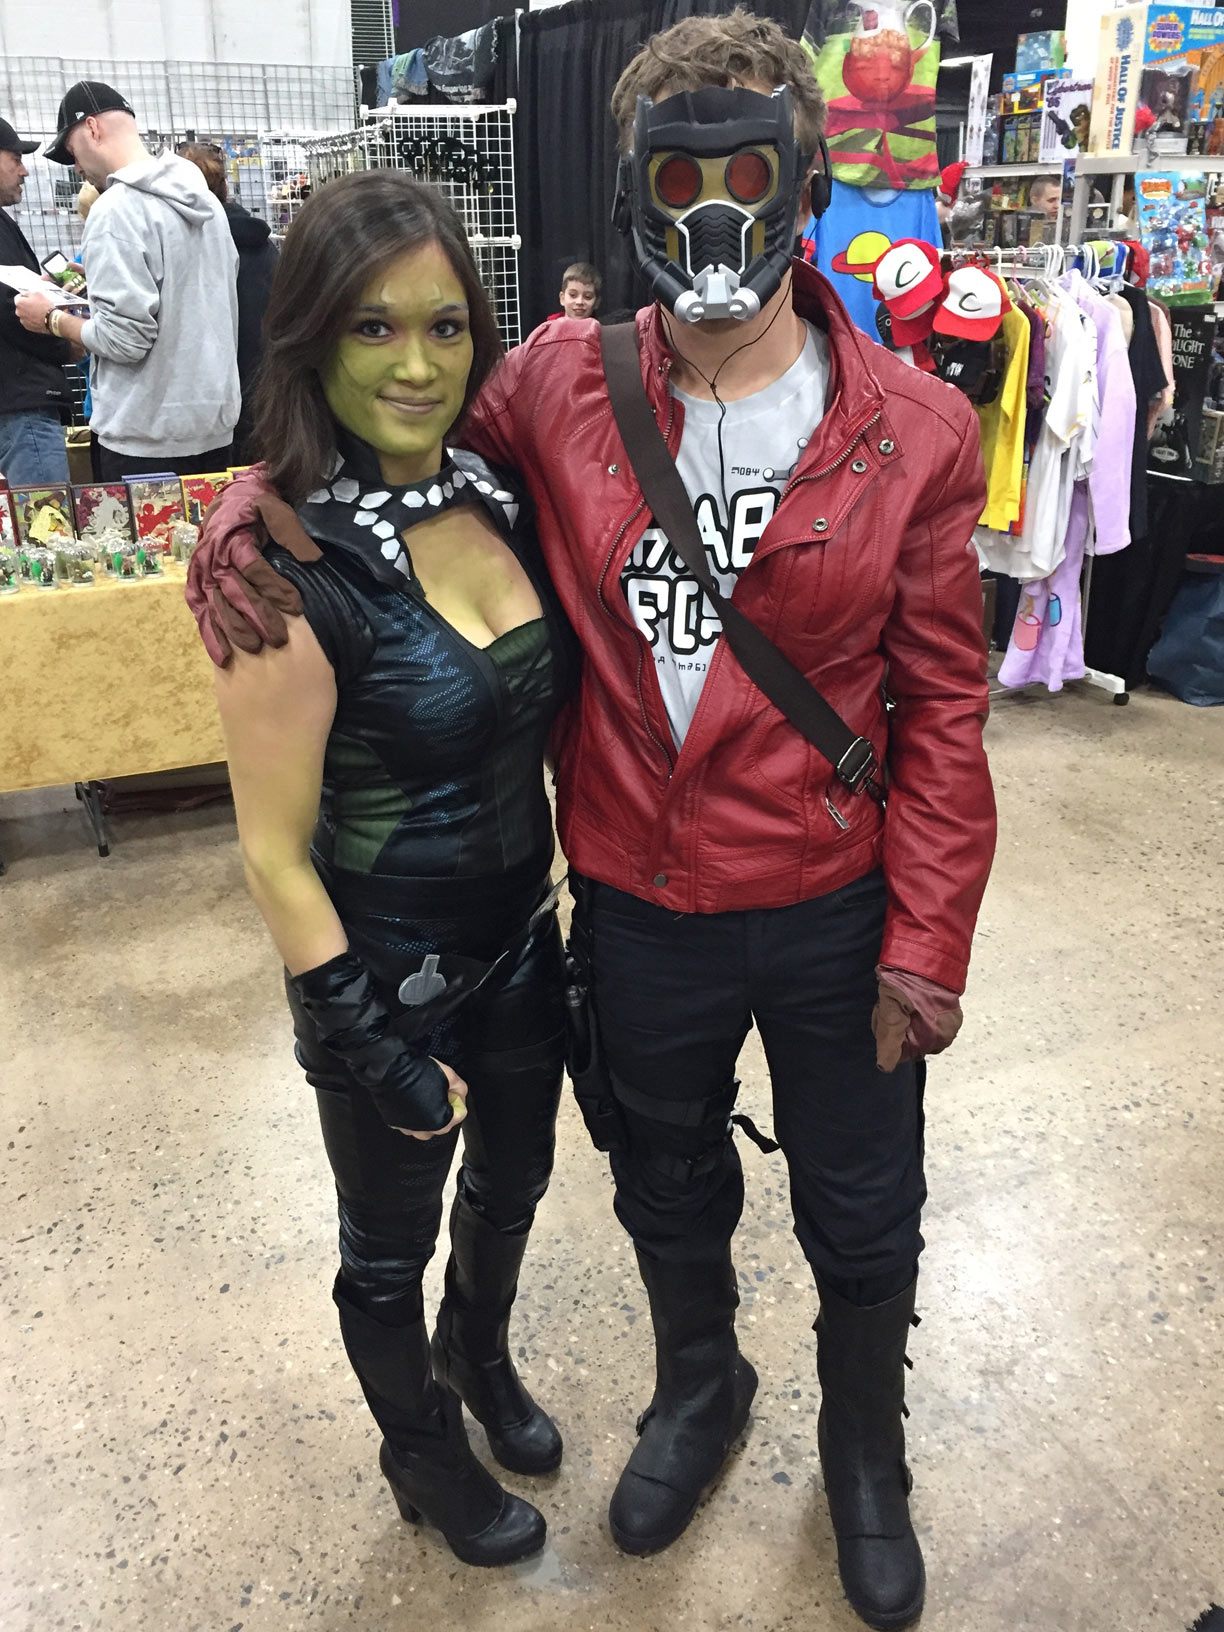 The Great Philadelphia Comic Con 2017 Cosplay Day 2 Starlord and Gamora